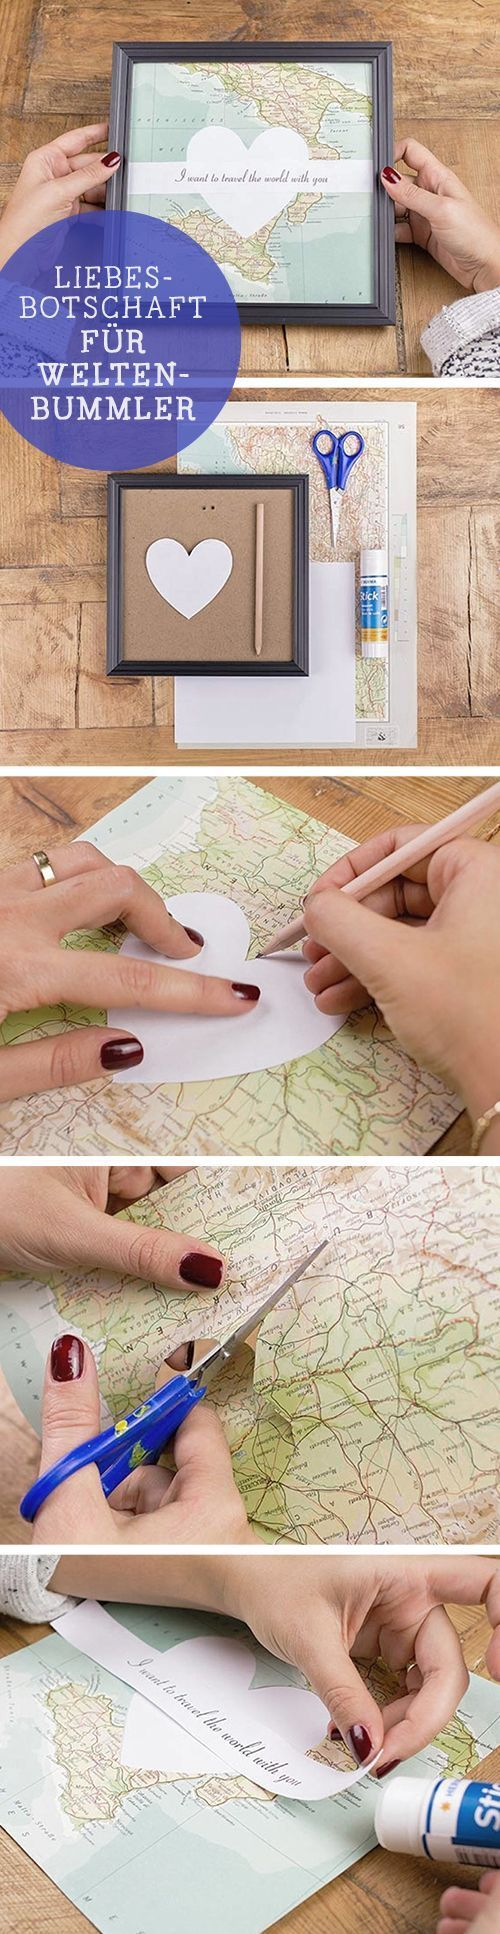 20 Travel Map Themed DIY Projects 2017